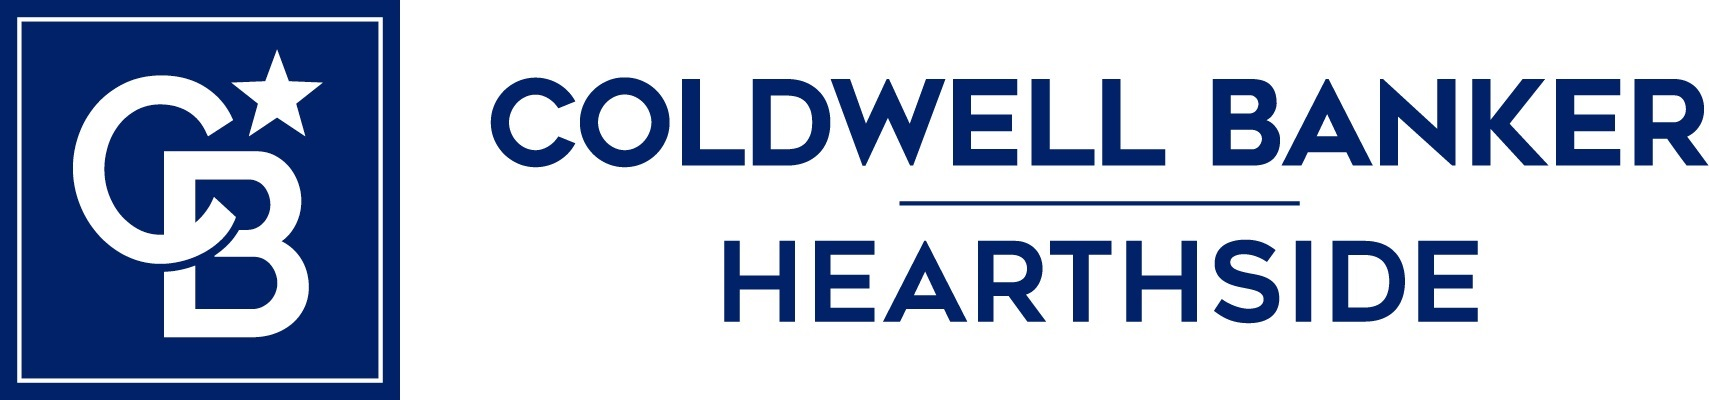 Meg Good - Coldwell Banker Hearthside